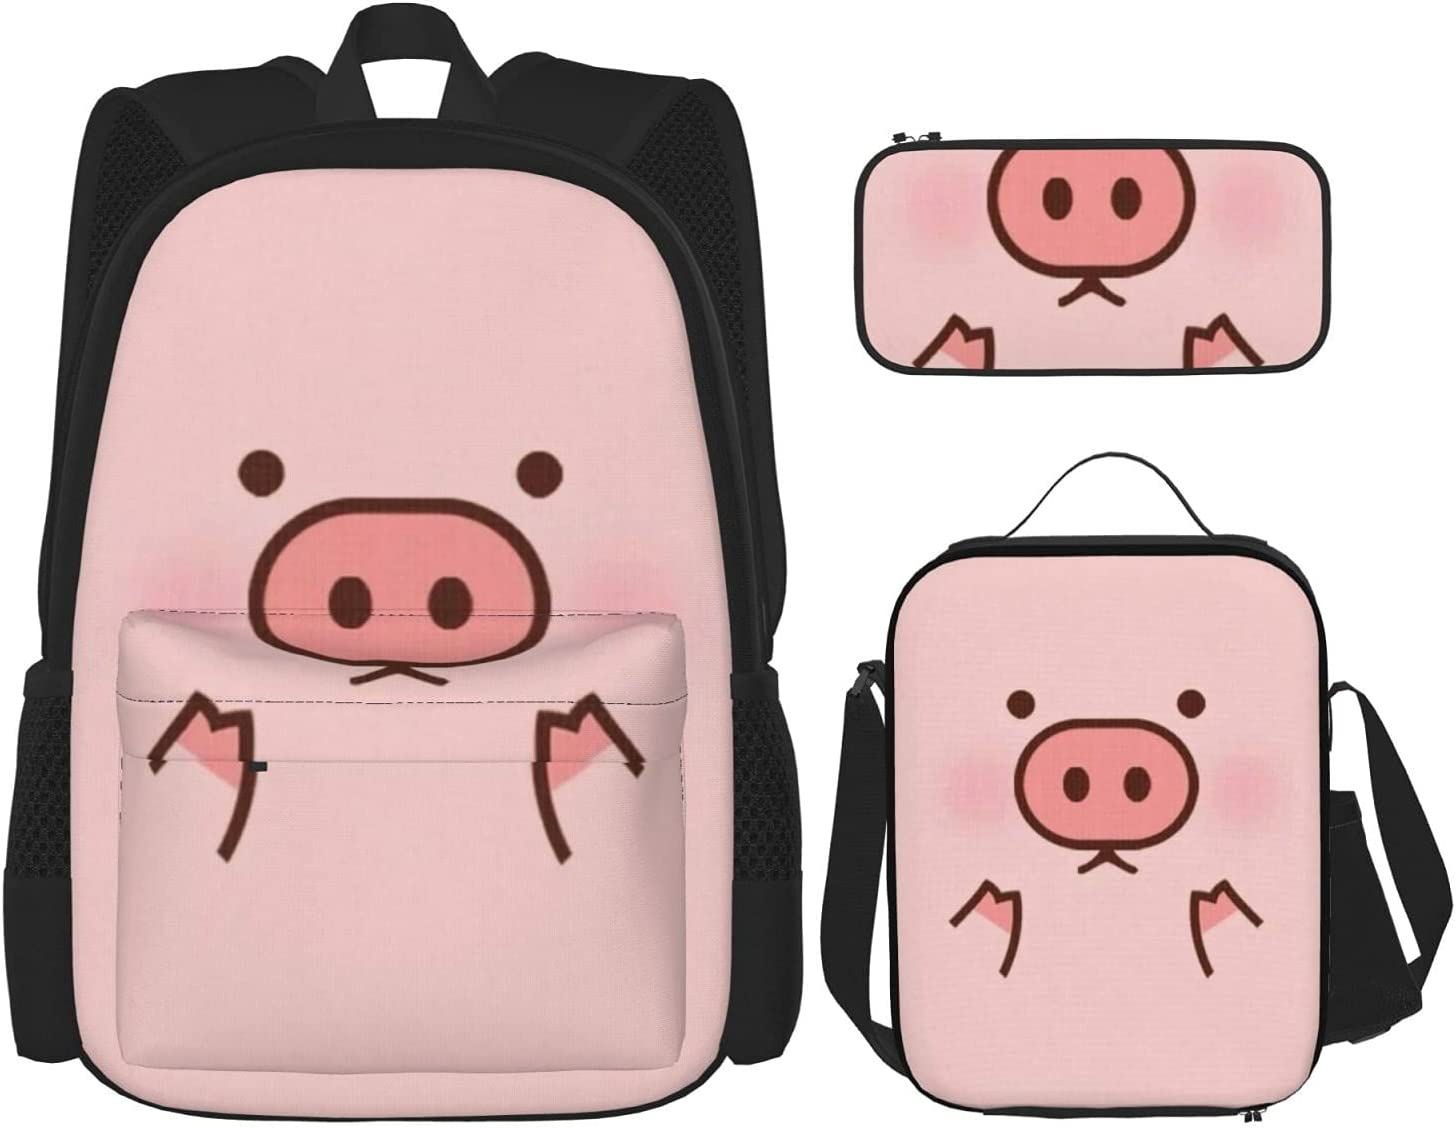 Back To School Gift Baltimore Mall - Piggy Cartoon Cute Scho Pink store Pig Patterned